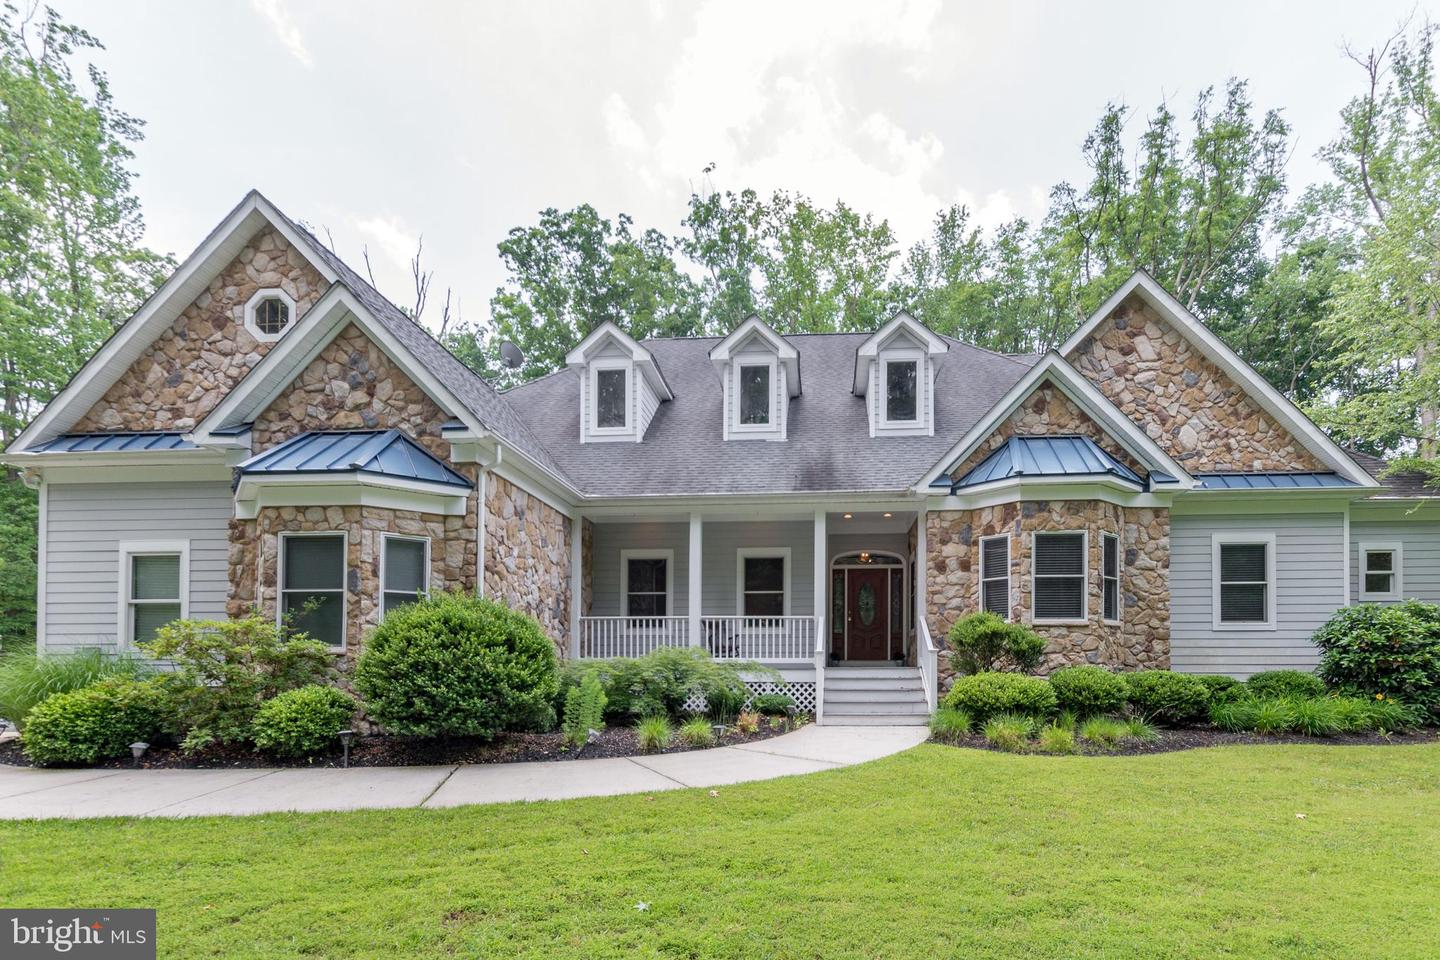 View this Frankford, Delaware Listing - Real Estate and Home Sales